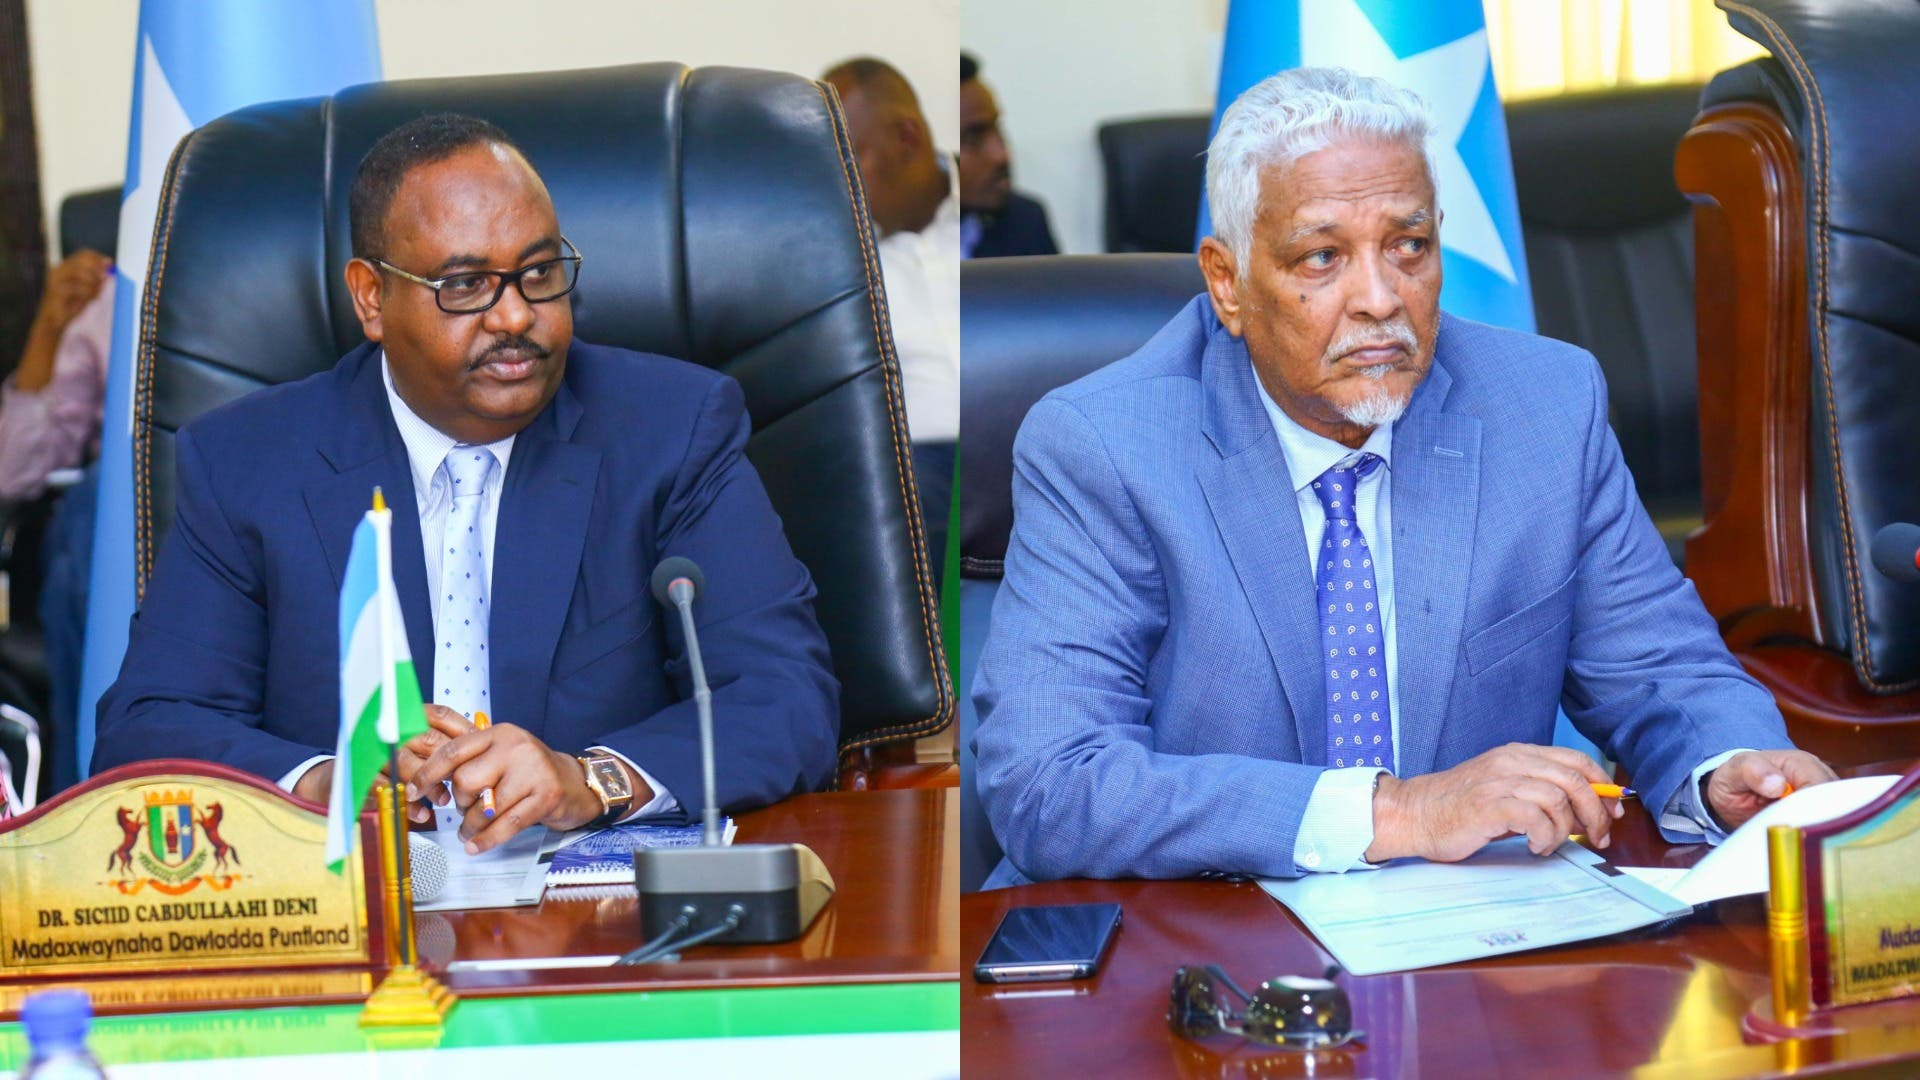 Constitutional Crisis in Puntland: The President's feud with his Vice President